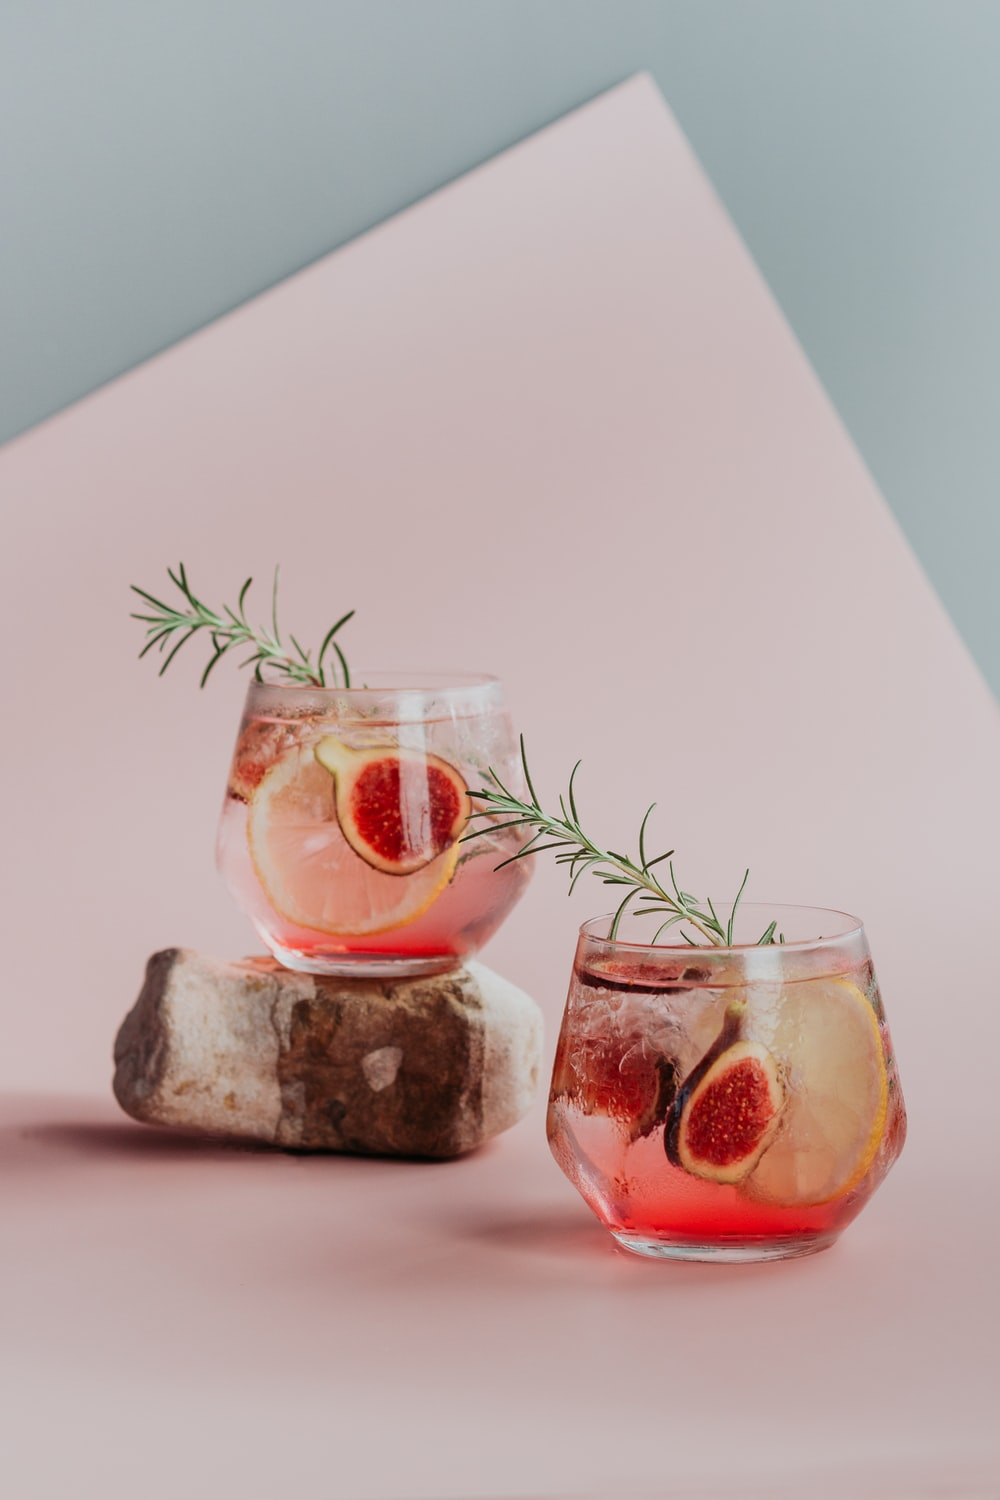 clear drinking glass with red liquid inside